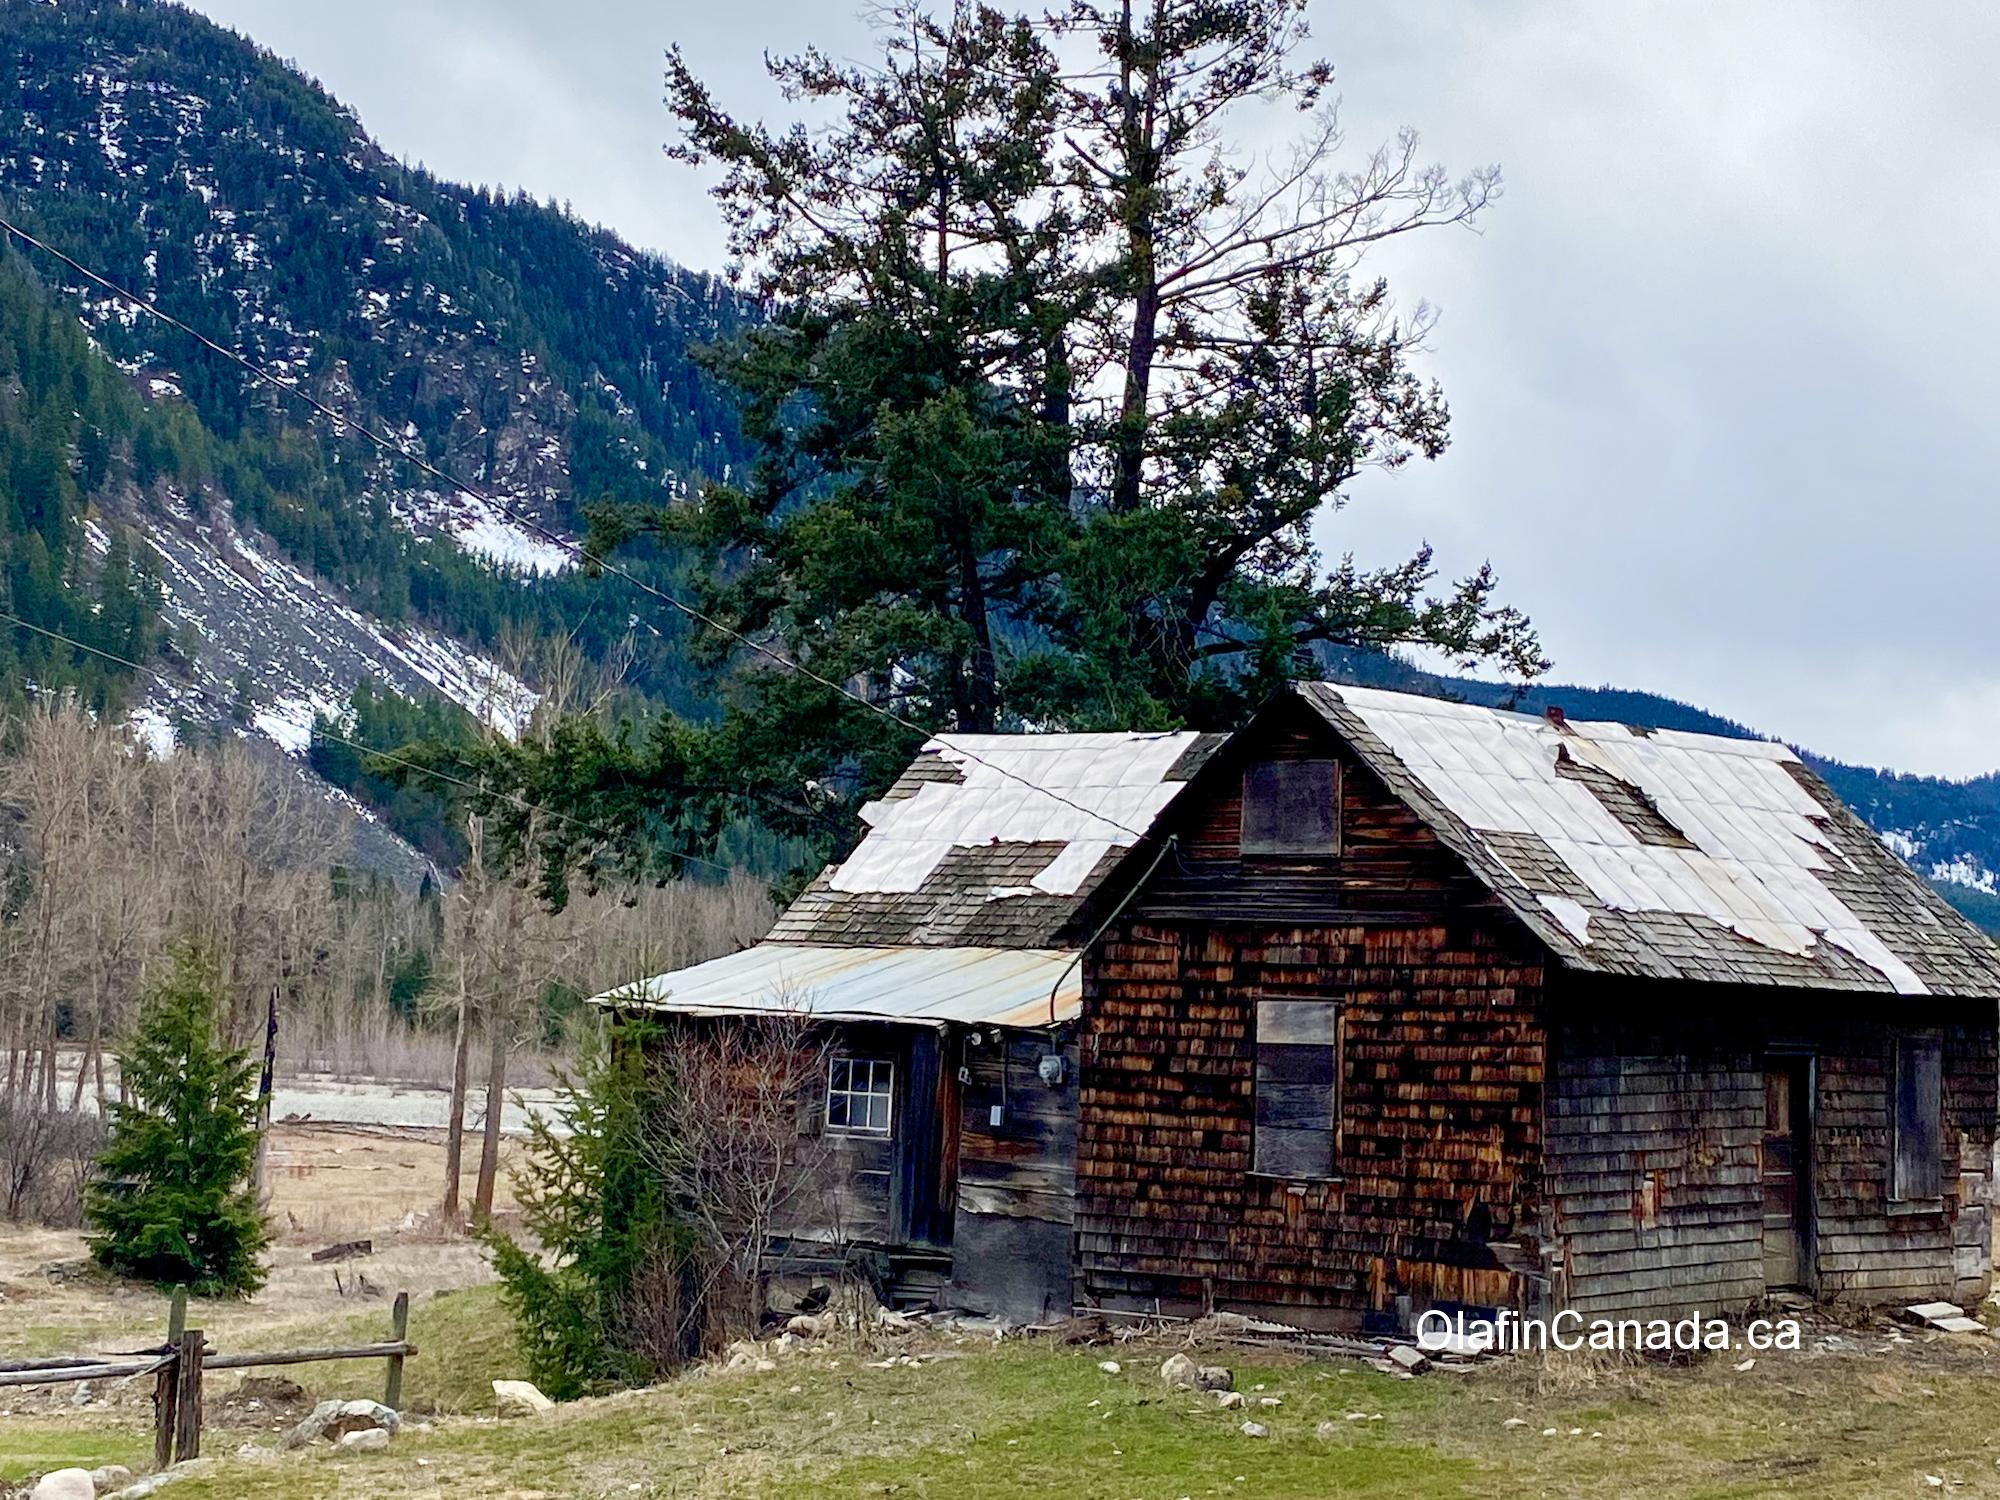 Old abandoned house on the Crowsnest Hwy to Hedley #olafincanada #britishcolumbia #discoverbc #abandonedbc #hedley